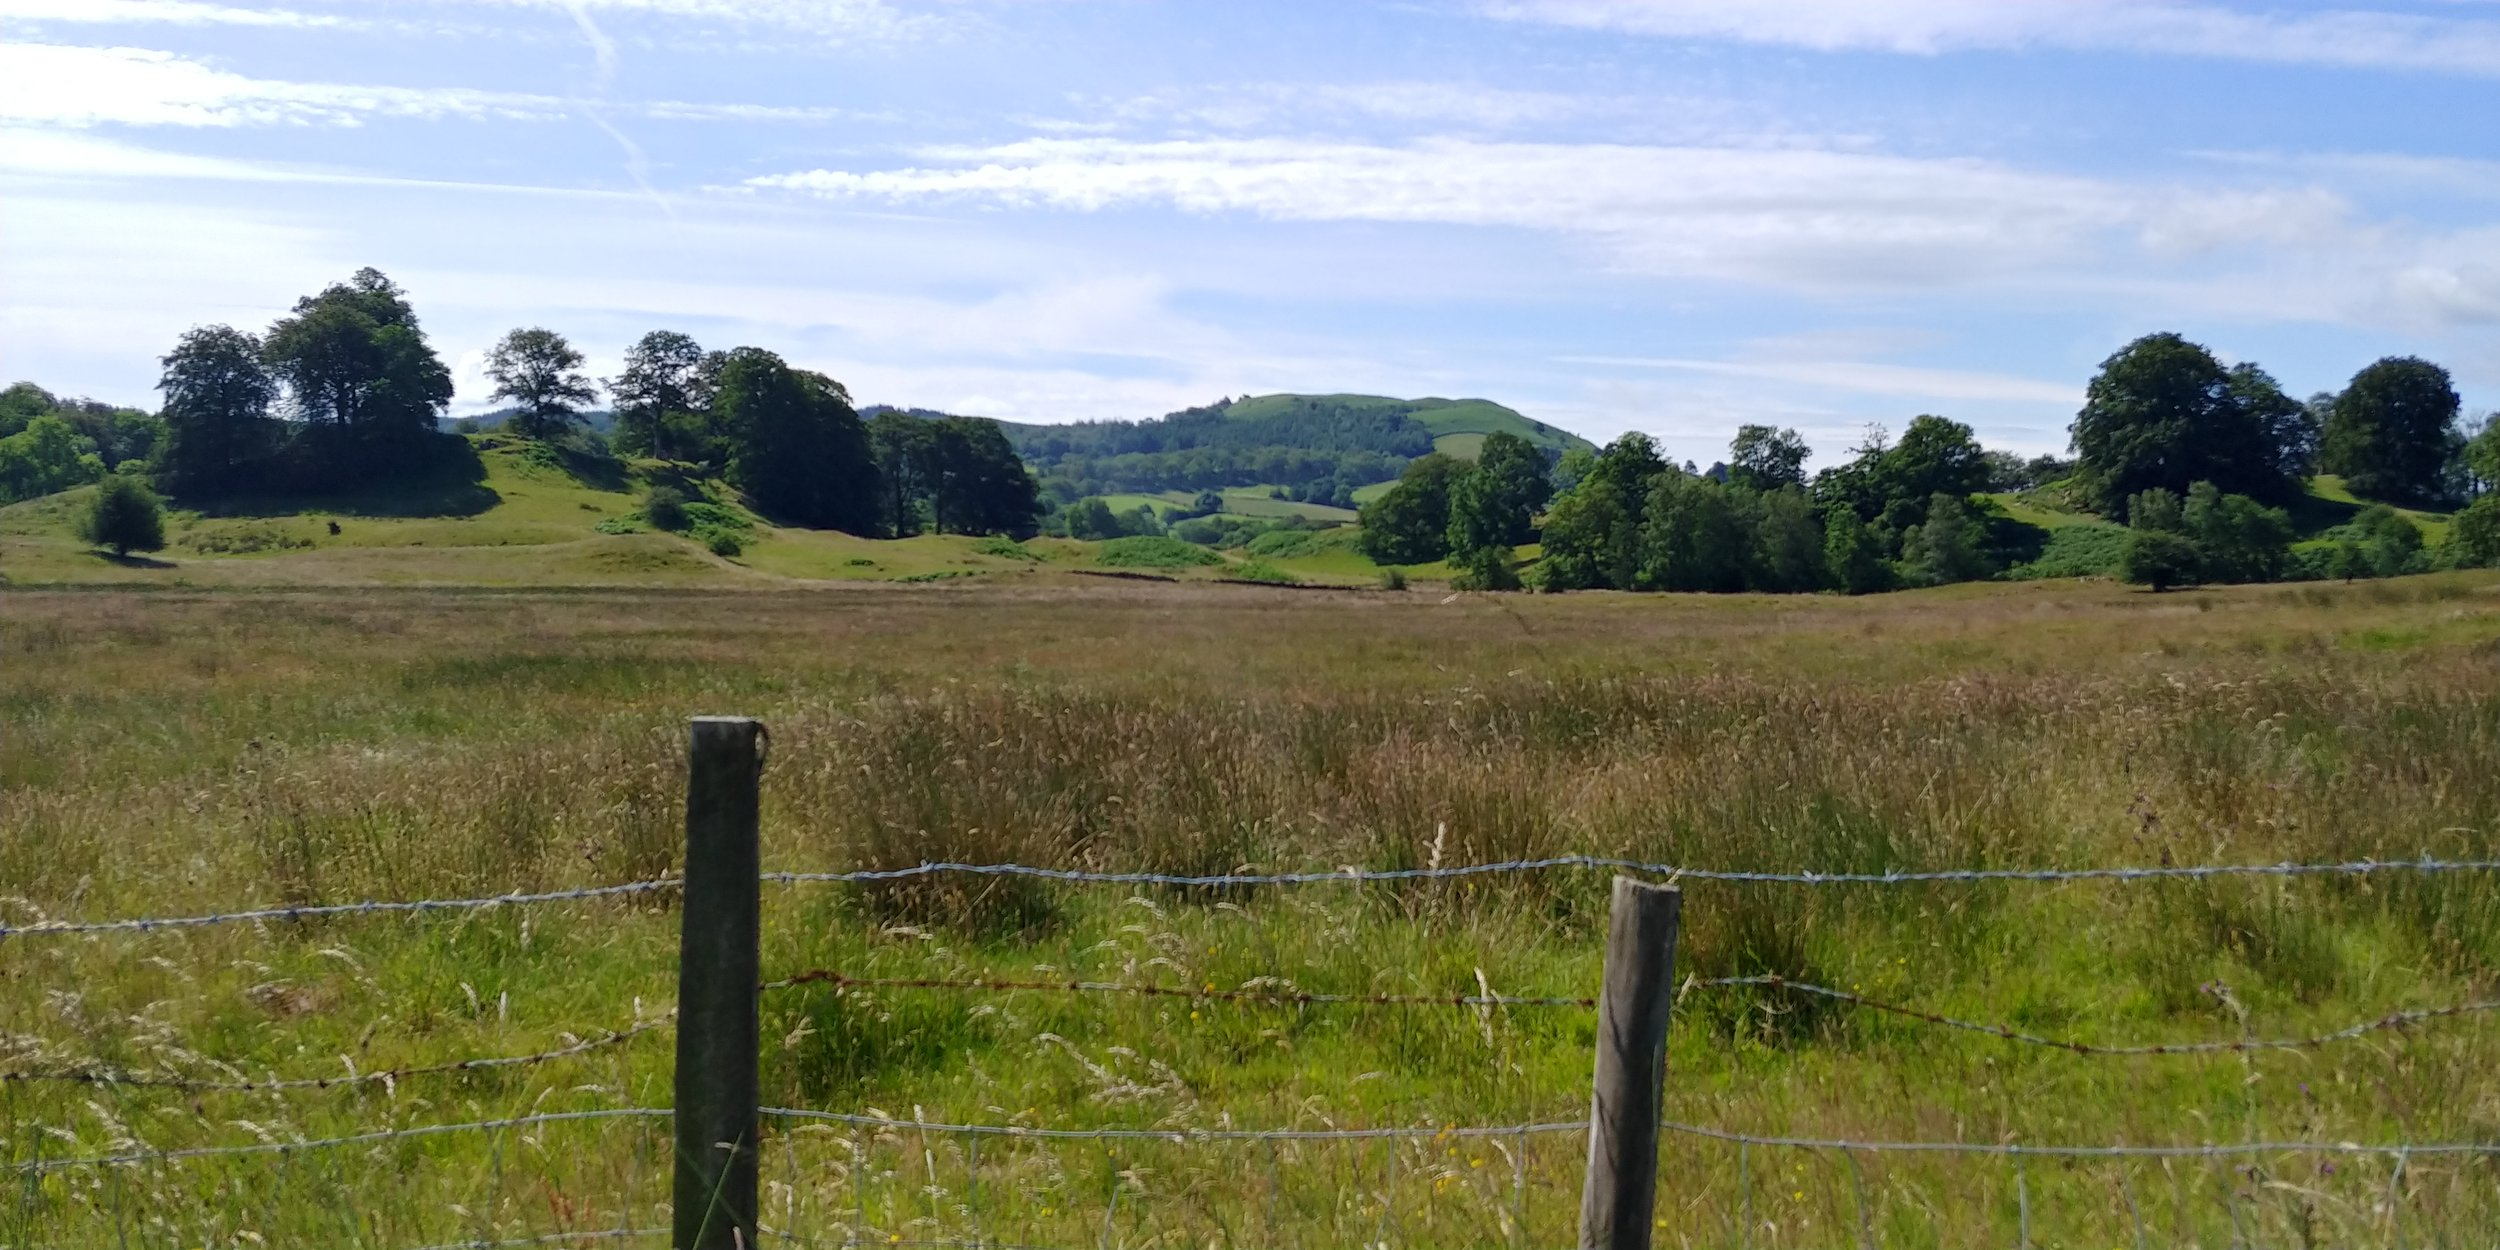 The view from the meadow pitches.